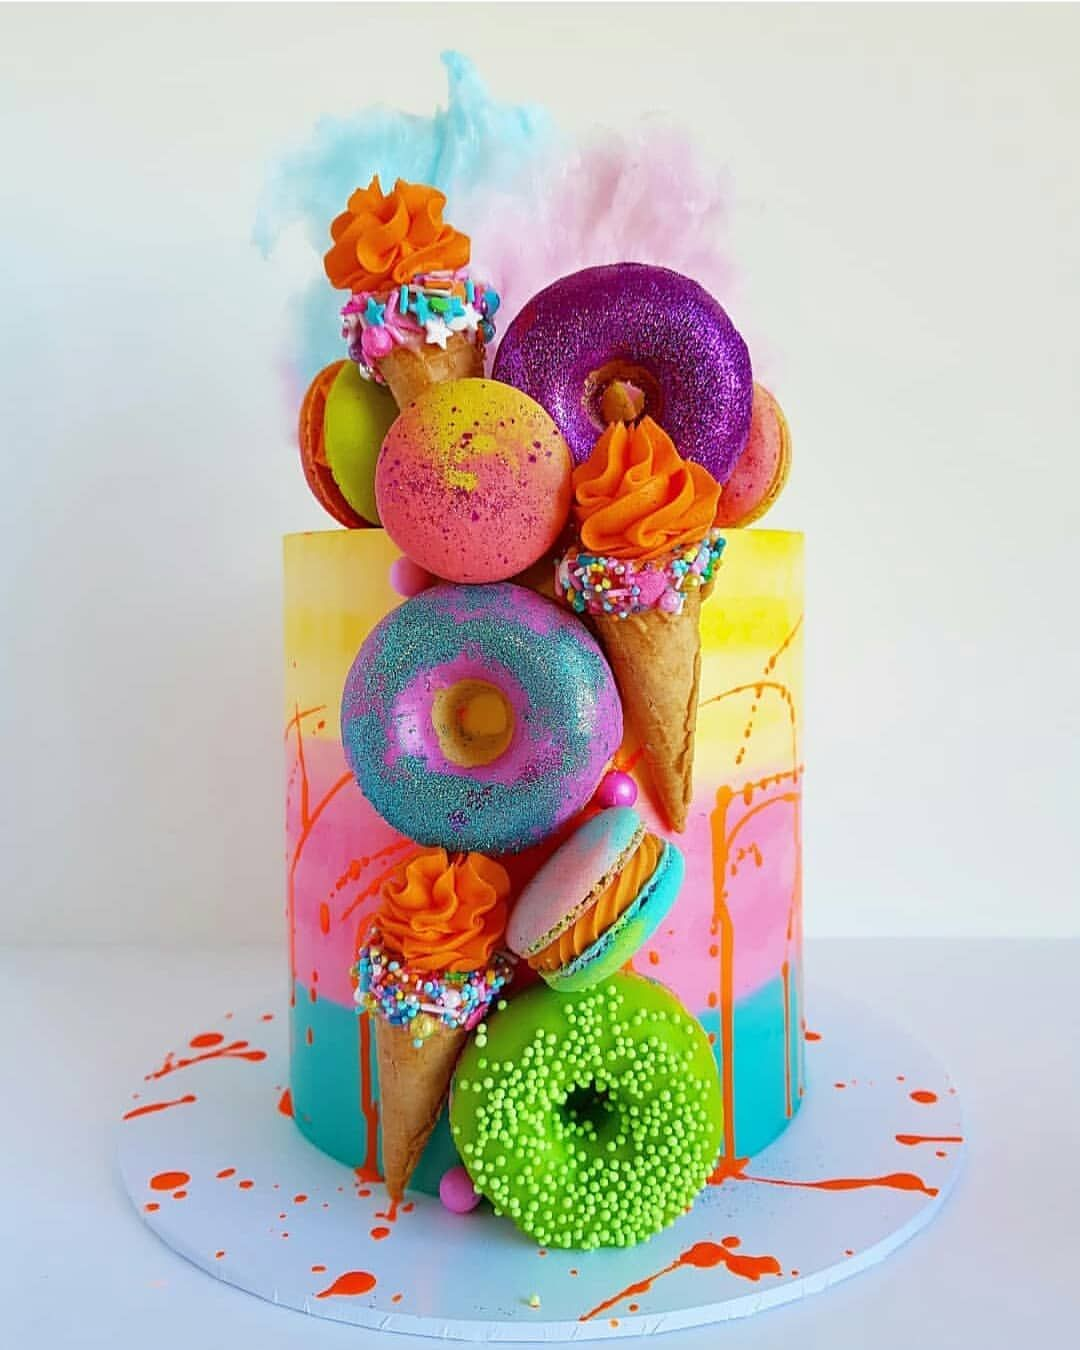 Stunning Cake From Sugarandsaltcookies Follow Sexycakes For More Cakeart Cakedecorating Cake Icing Sp Crazy Cakes Candyland Cake Neon Cakes